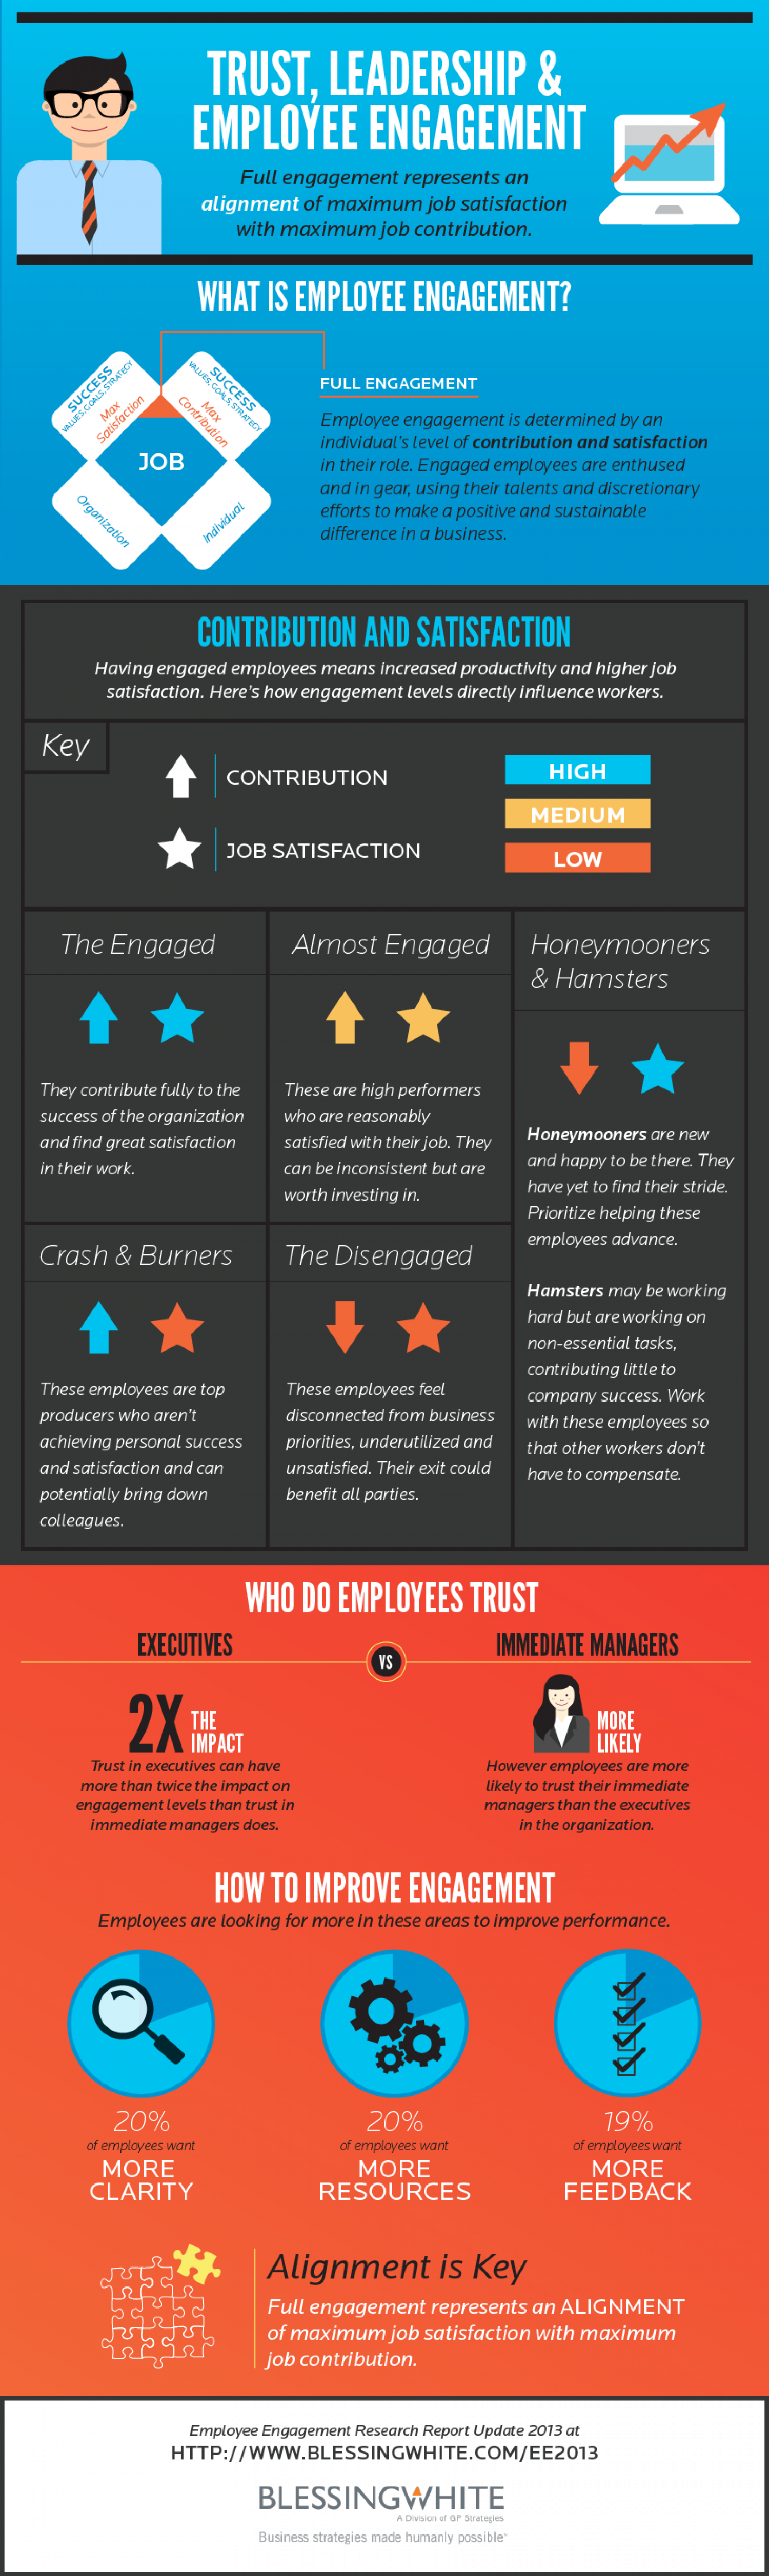 Trust, Leadership & Employee Engagement Infographic